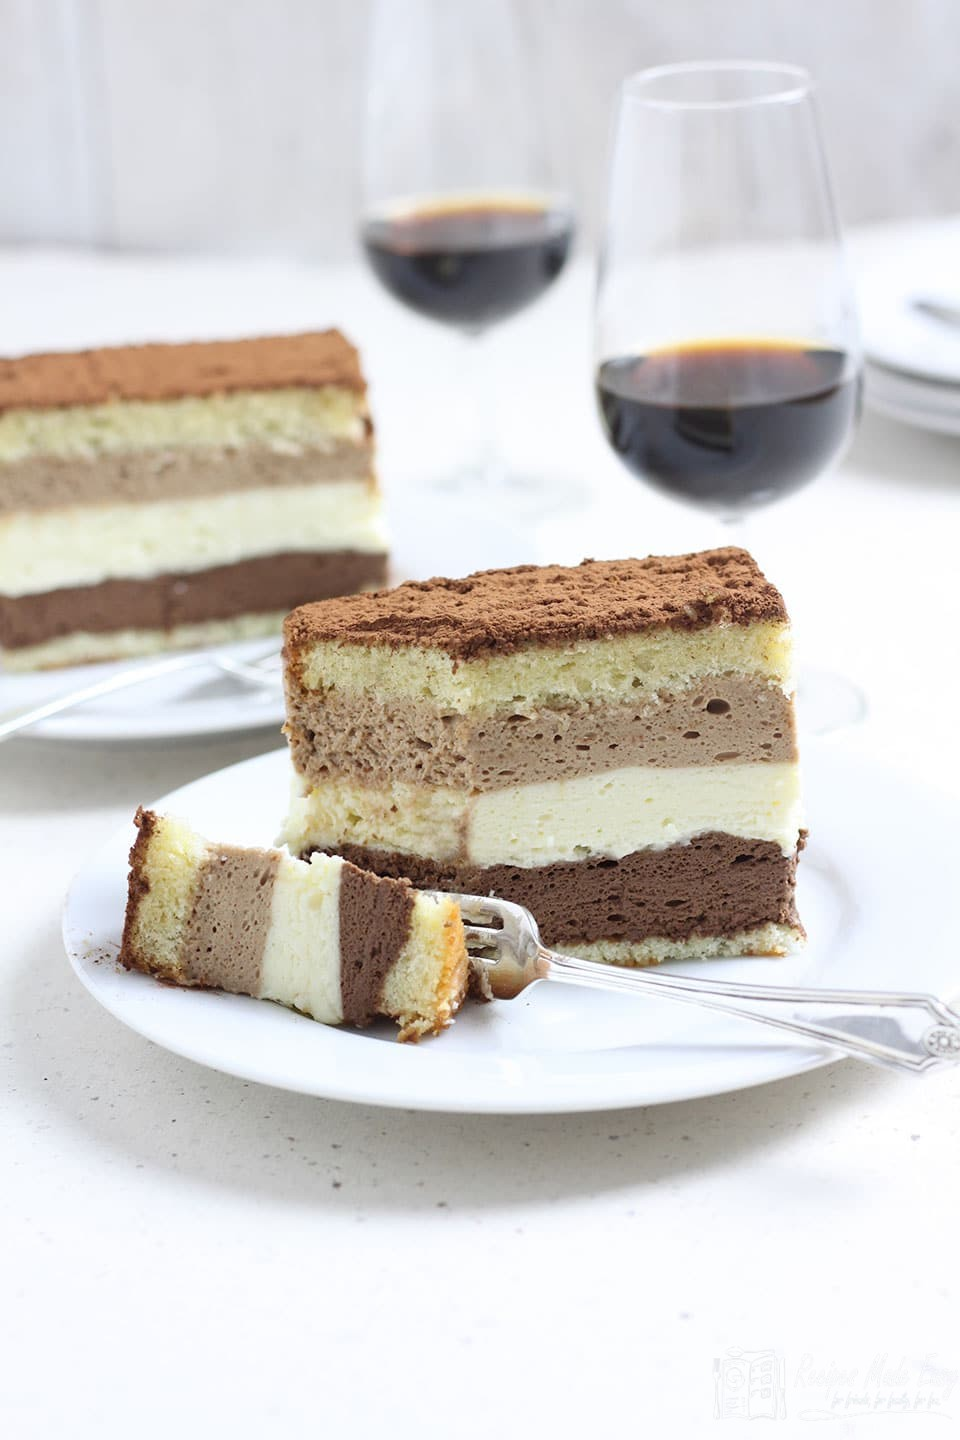 chocolate-and-almond-mousse-cake-2-edit